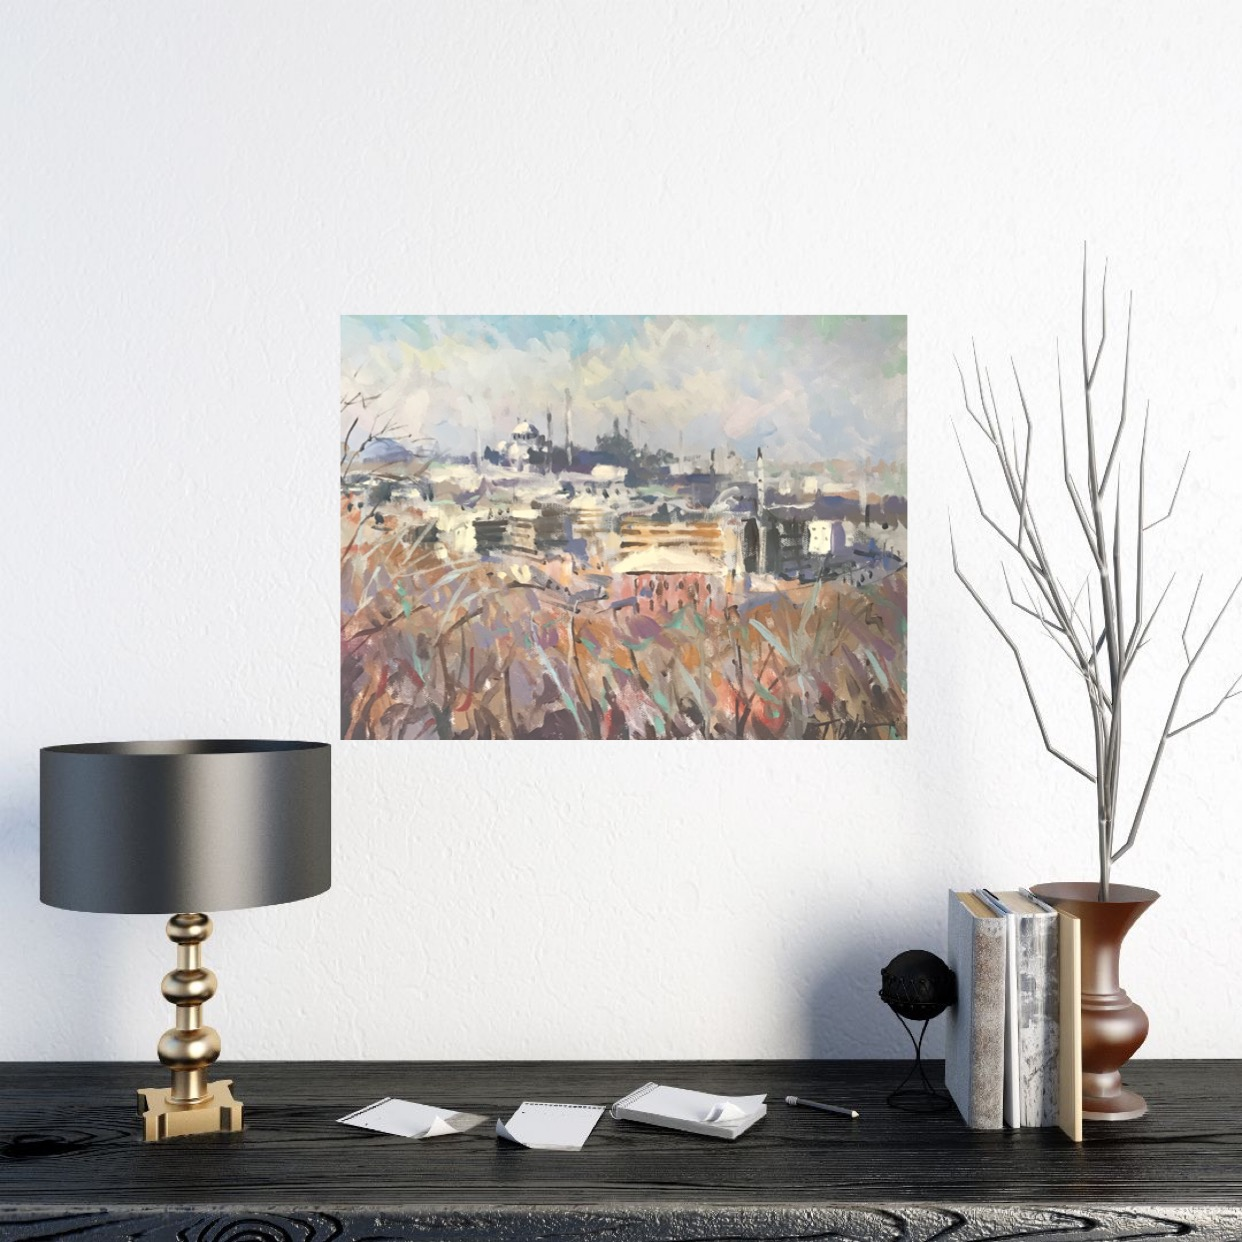 Trevor Waugh, View of Istanbul, is an original oil painting. A colourful depiction of the busy city of Istanbul.